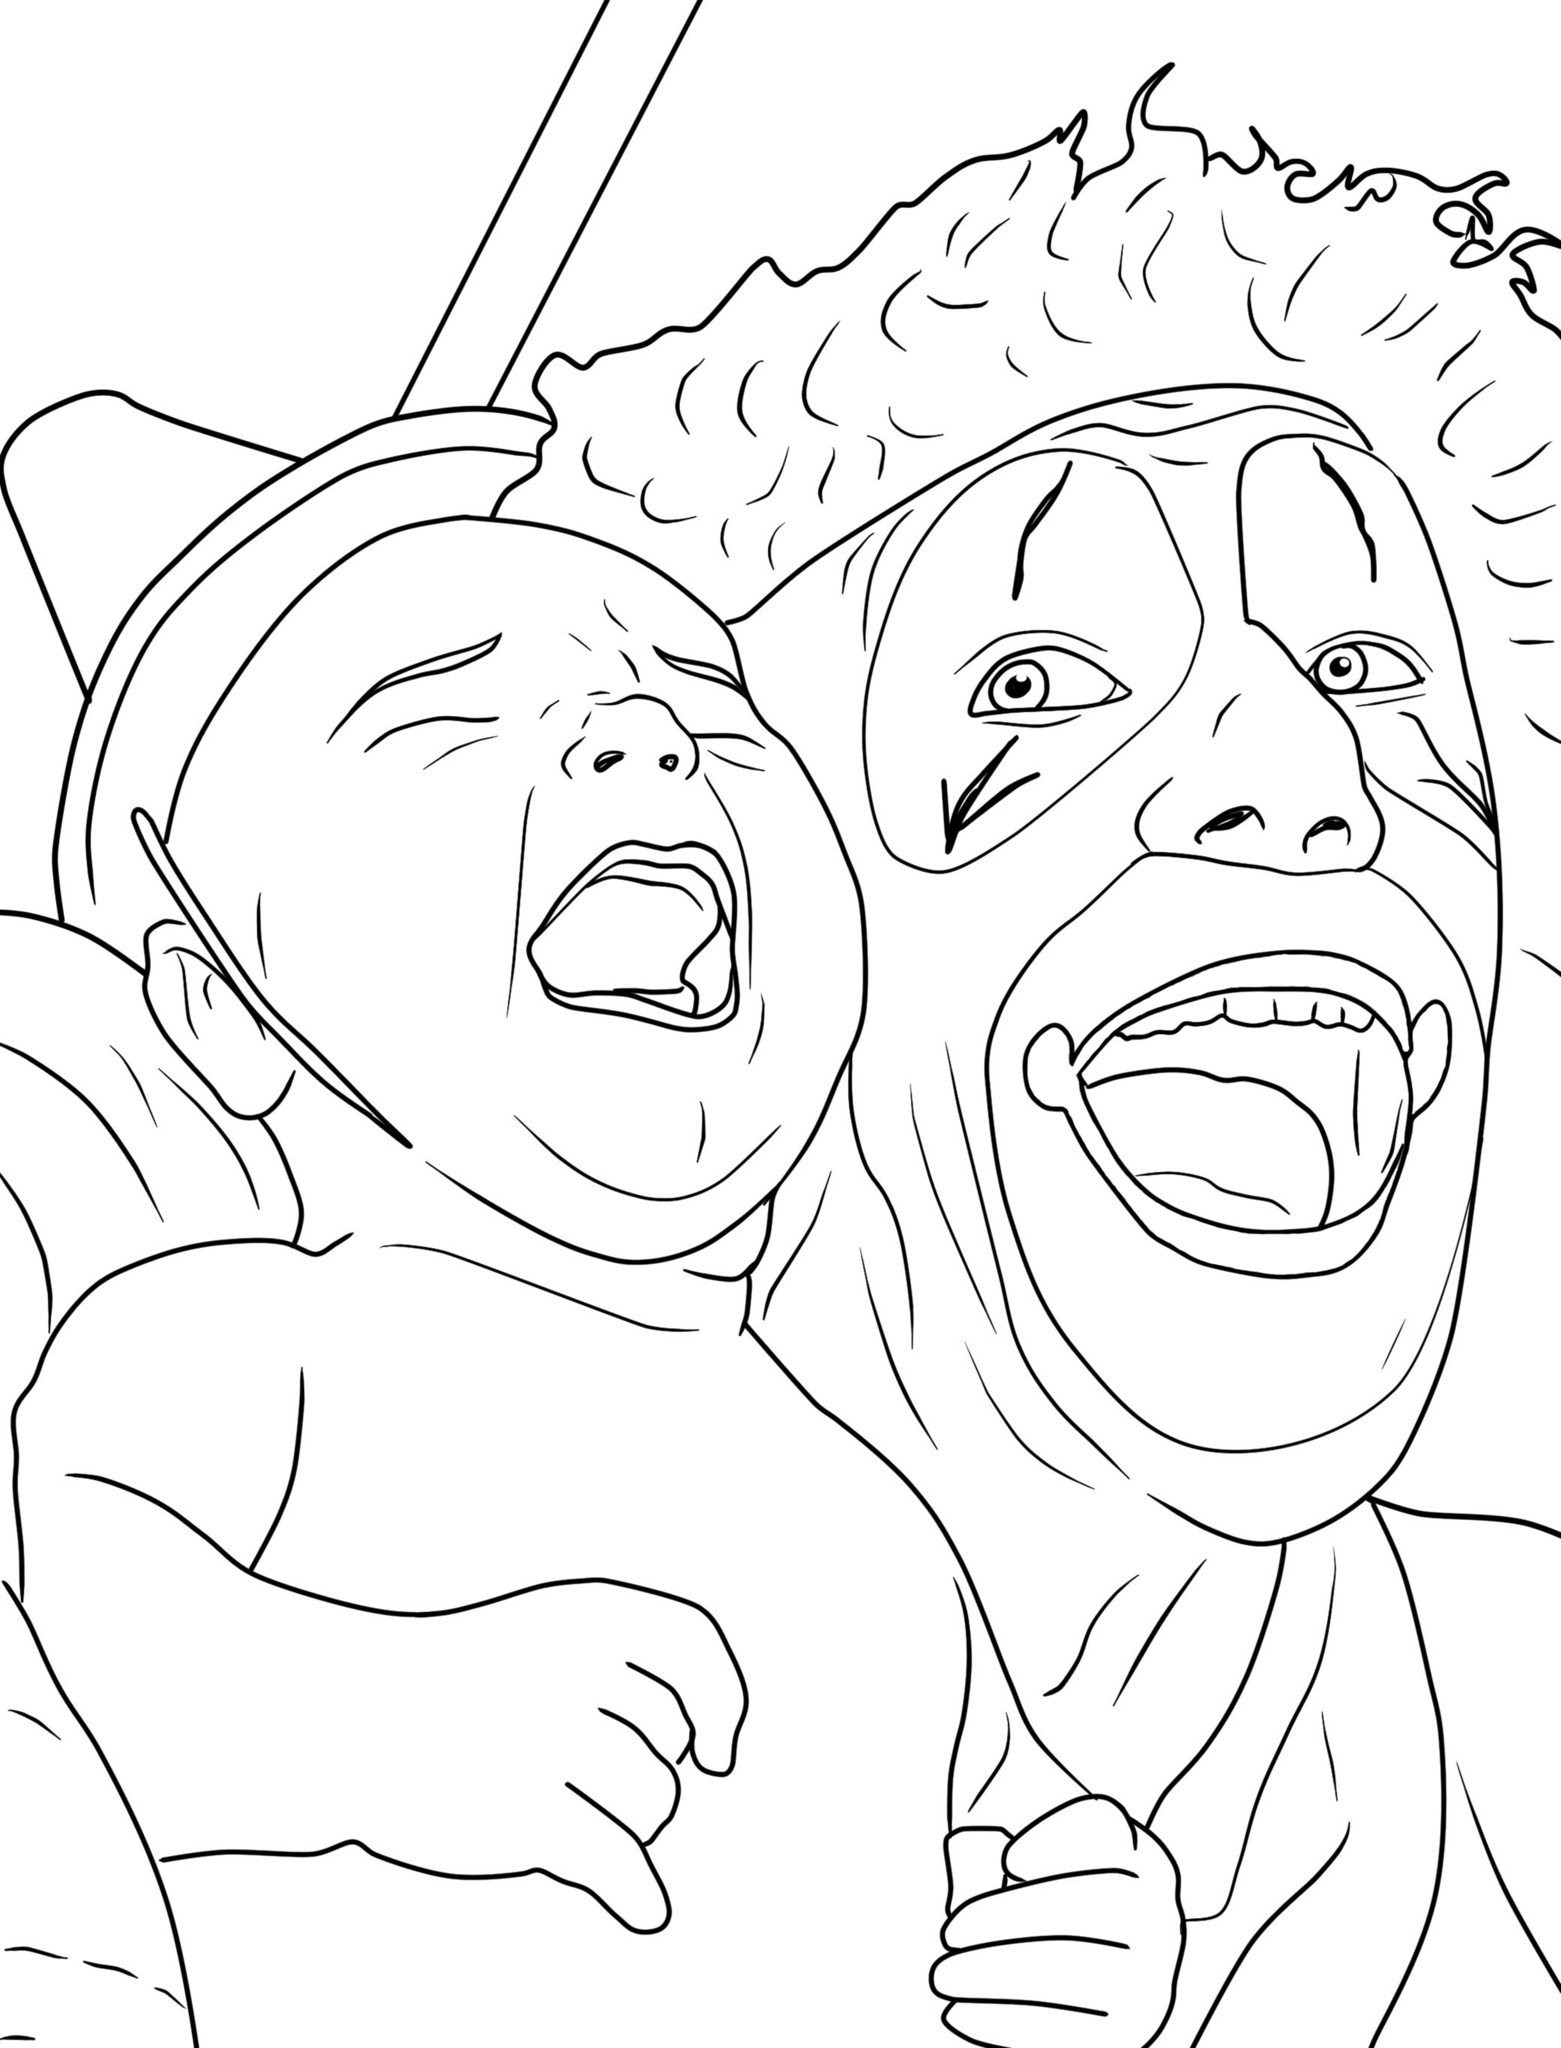 clown coloring pages printable clown coloring page free printable coloring pages clown pages printable coloring